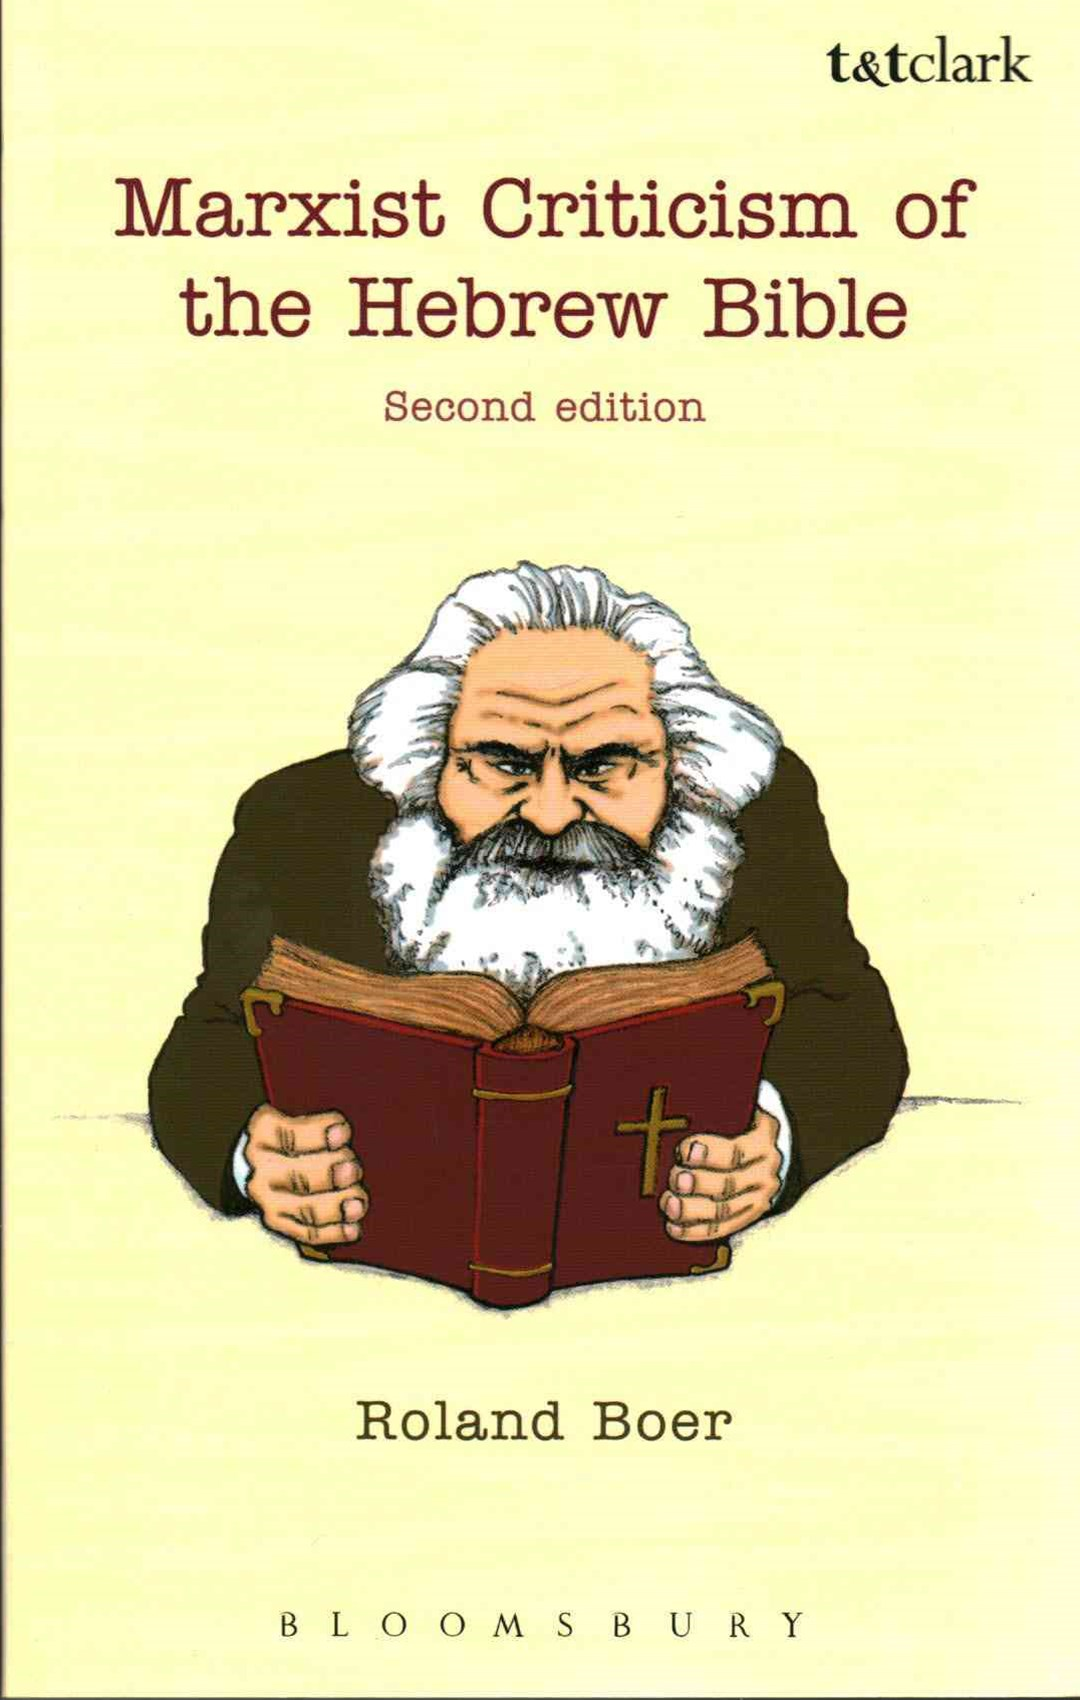 Marxist Criticism of the Hebrew Bible